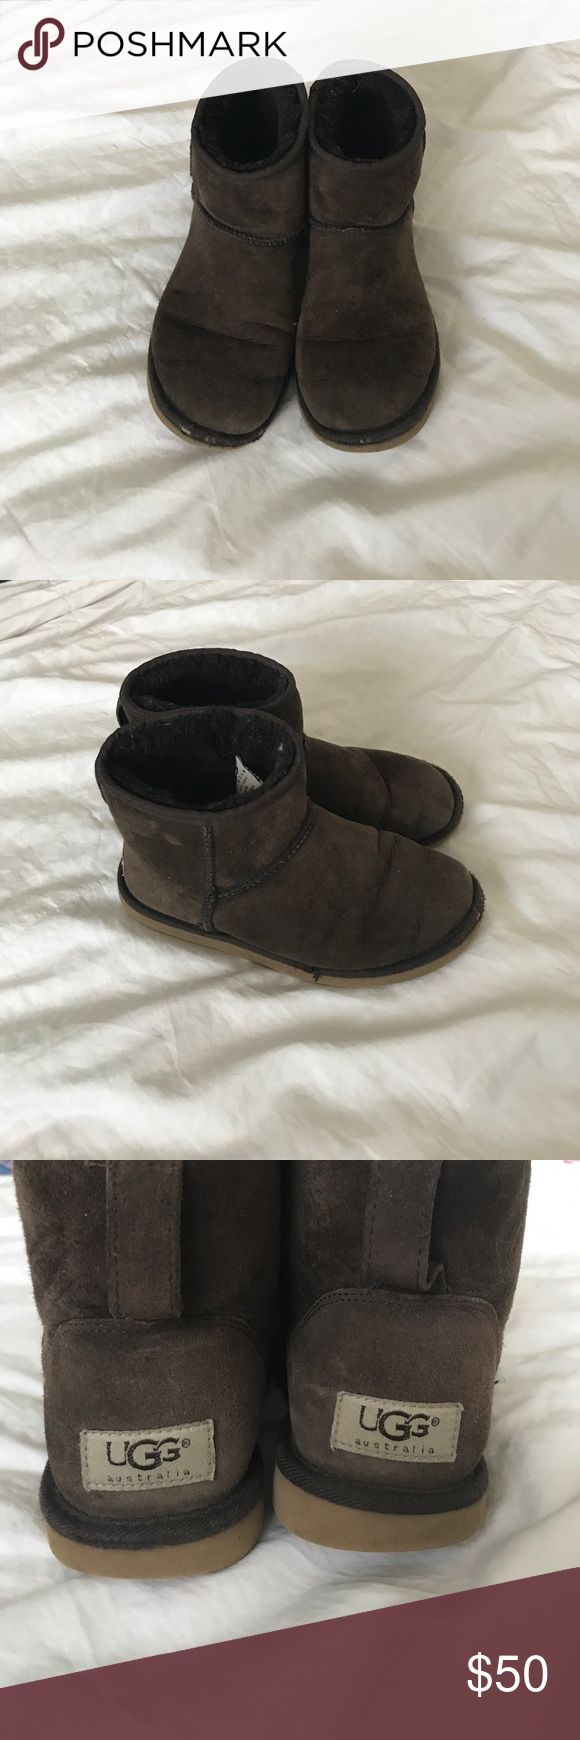 Chocolate brown UGGs mini boots Super cute, previously loved chocolate brown UGGs. Some signs of wear on the toes as seen in the pictures. Still a lot of life left in these. Open to all reasonable offers. UGG Shoes